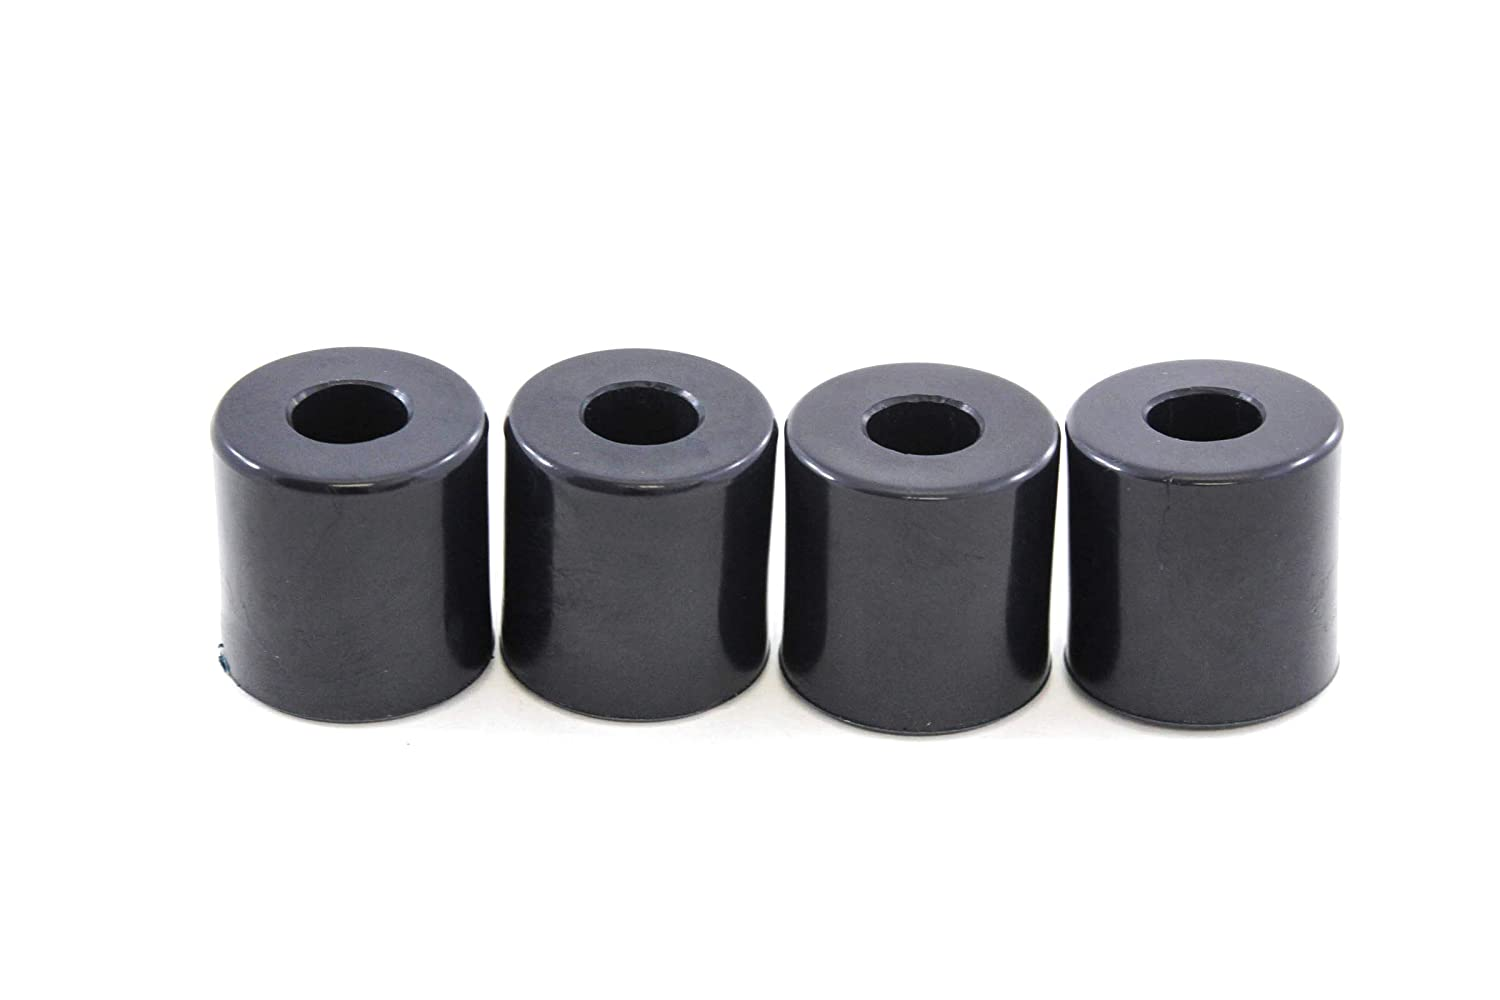 Red Hound Auto Hood Roller Polyurethane Bushing Large 5//8 ID Compatible with Peterbilt /& Kenworth 4pc Set